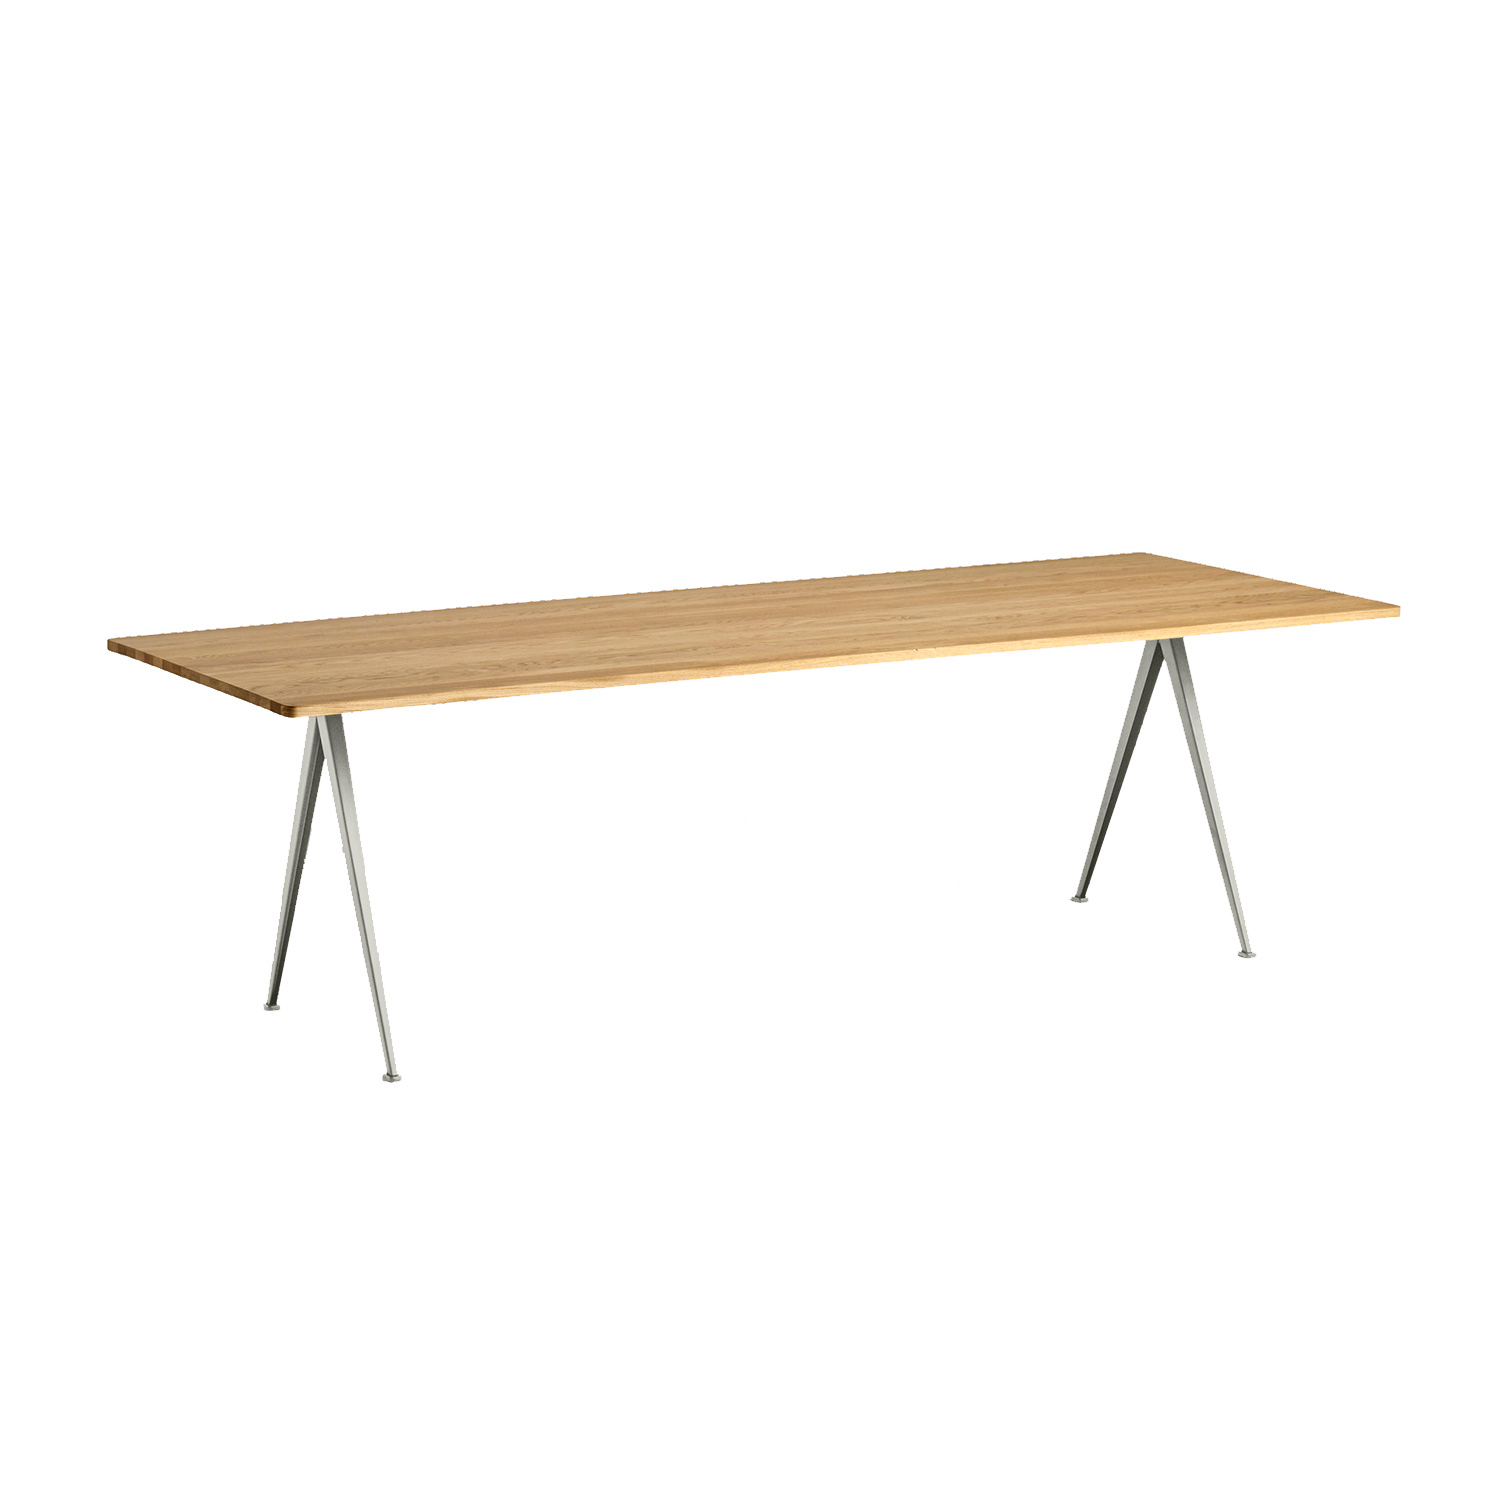 Pyramid table 02 250x85, beige frame/clear